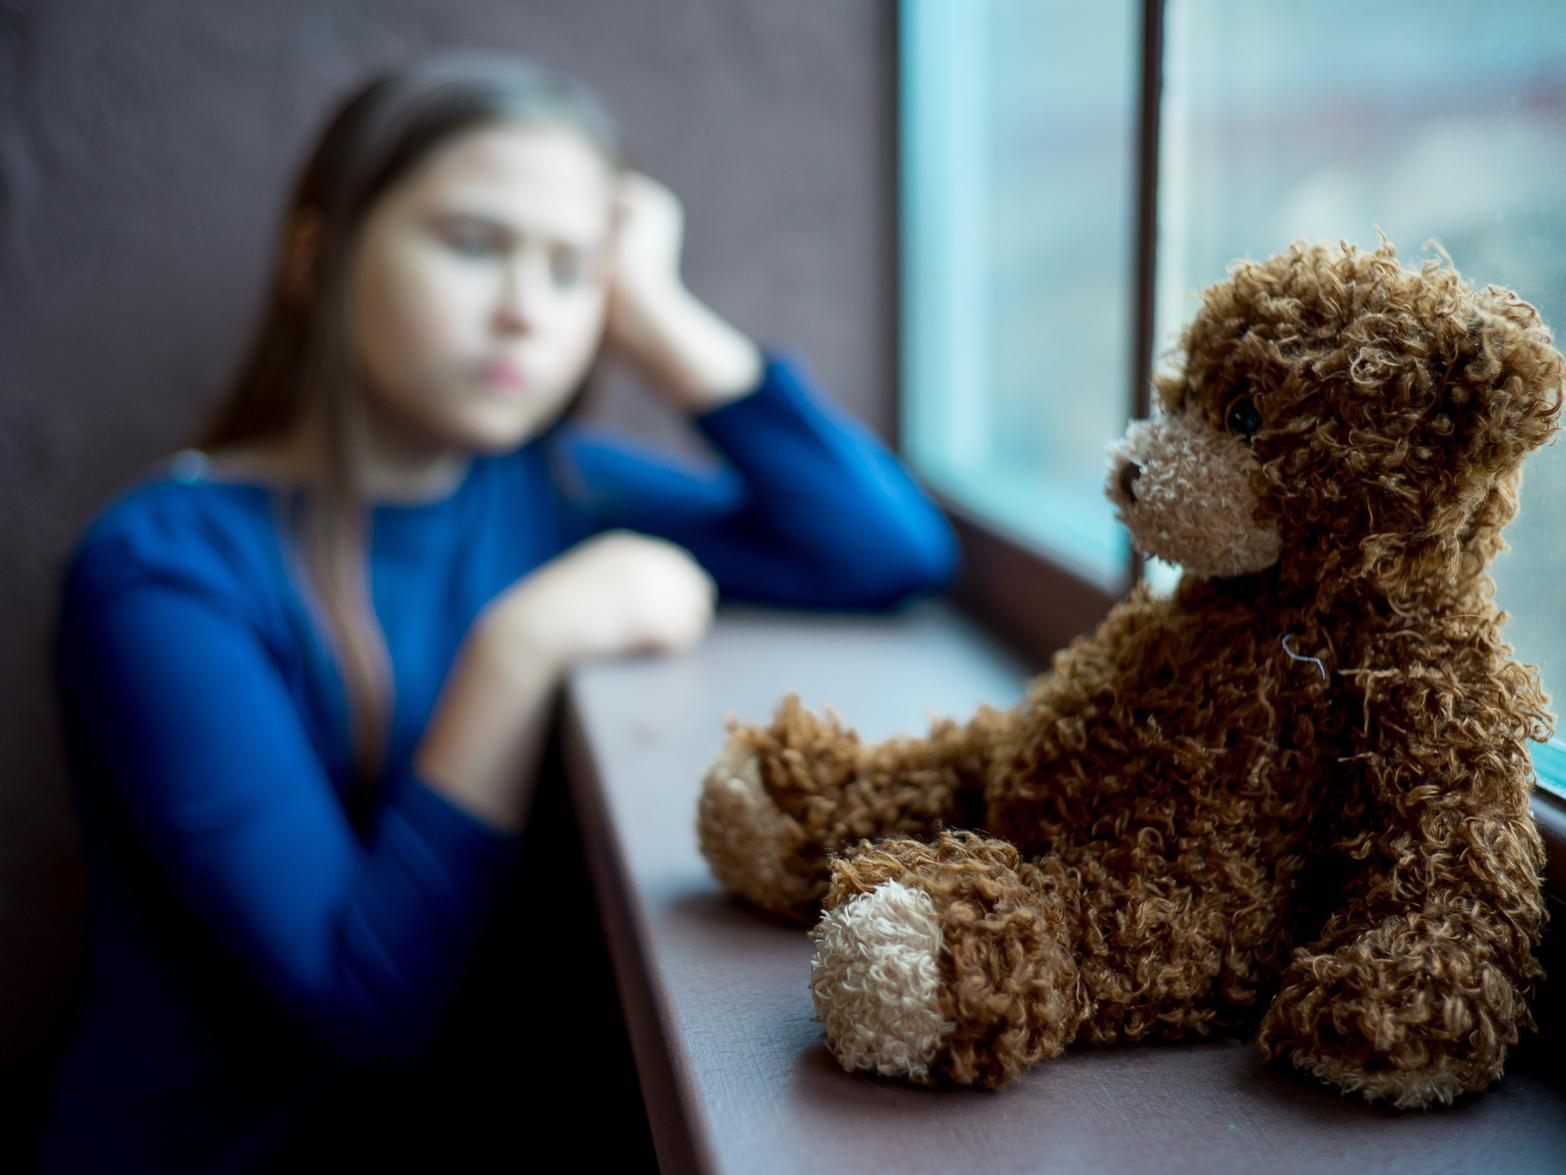 Leeds Mind charity boss urges government to tackle children's mental health crisis now as young 'bear the brunt' of pandemic | Yorkshire Evening Post